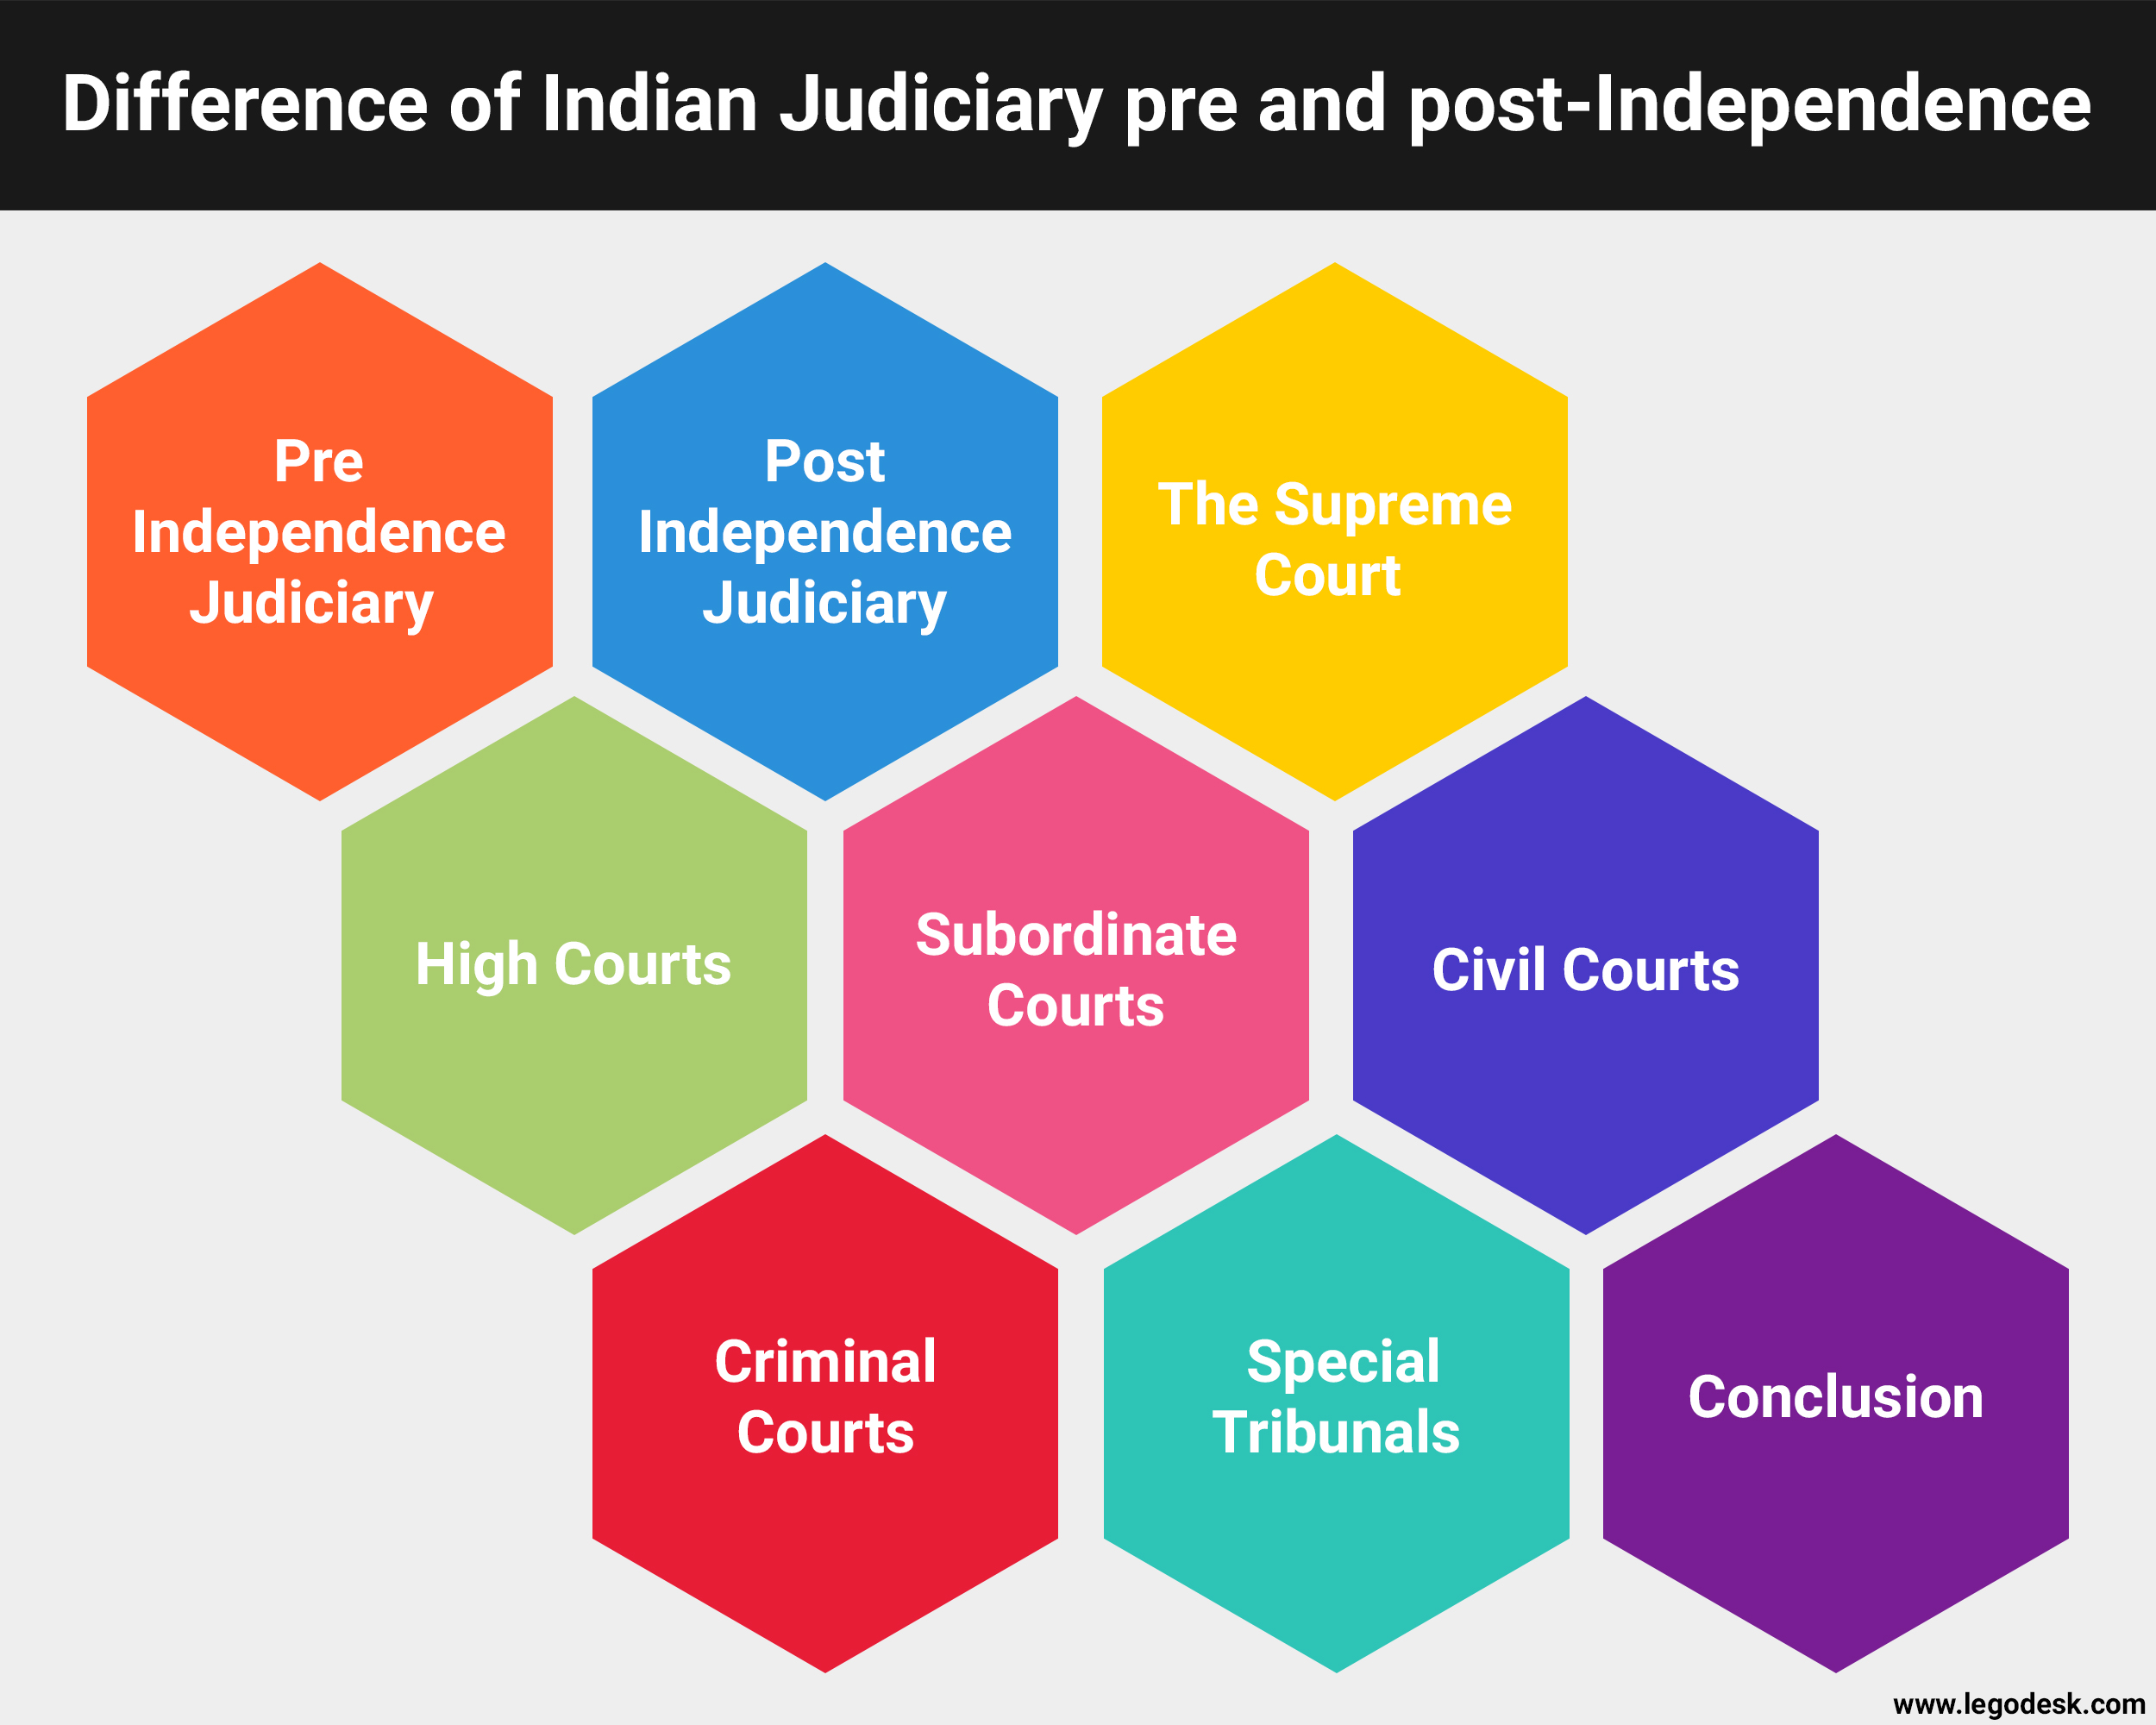 Difference of Indian Judiciary Pre and Post-Independence